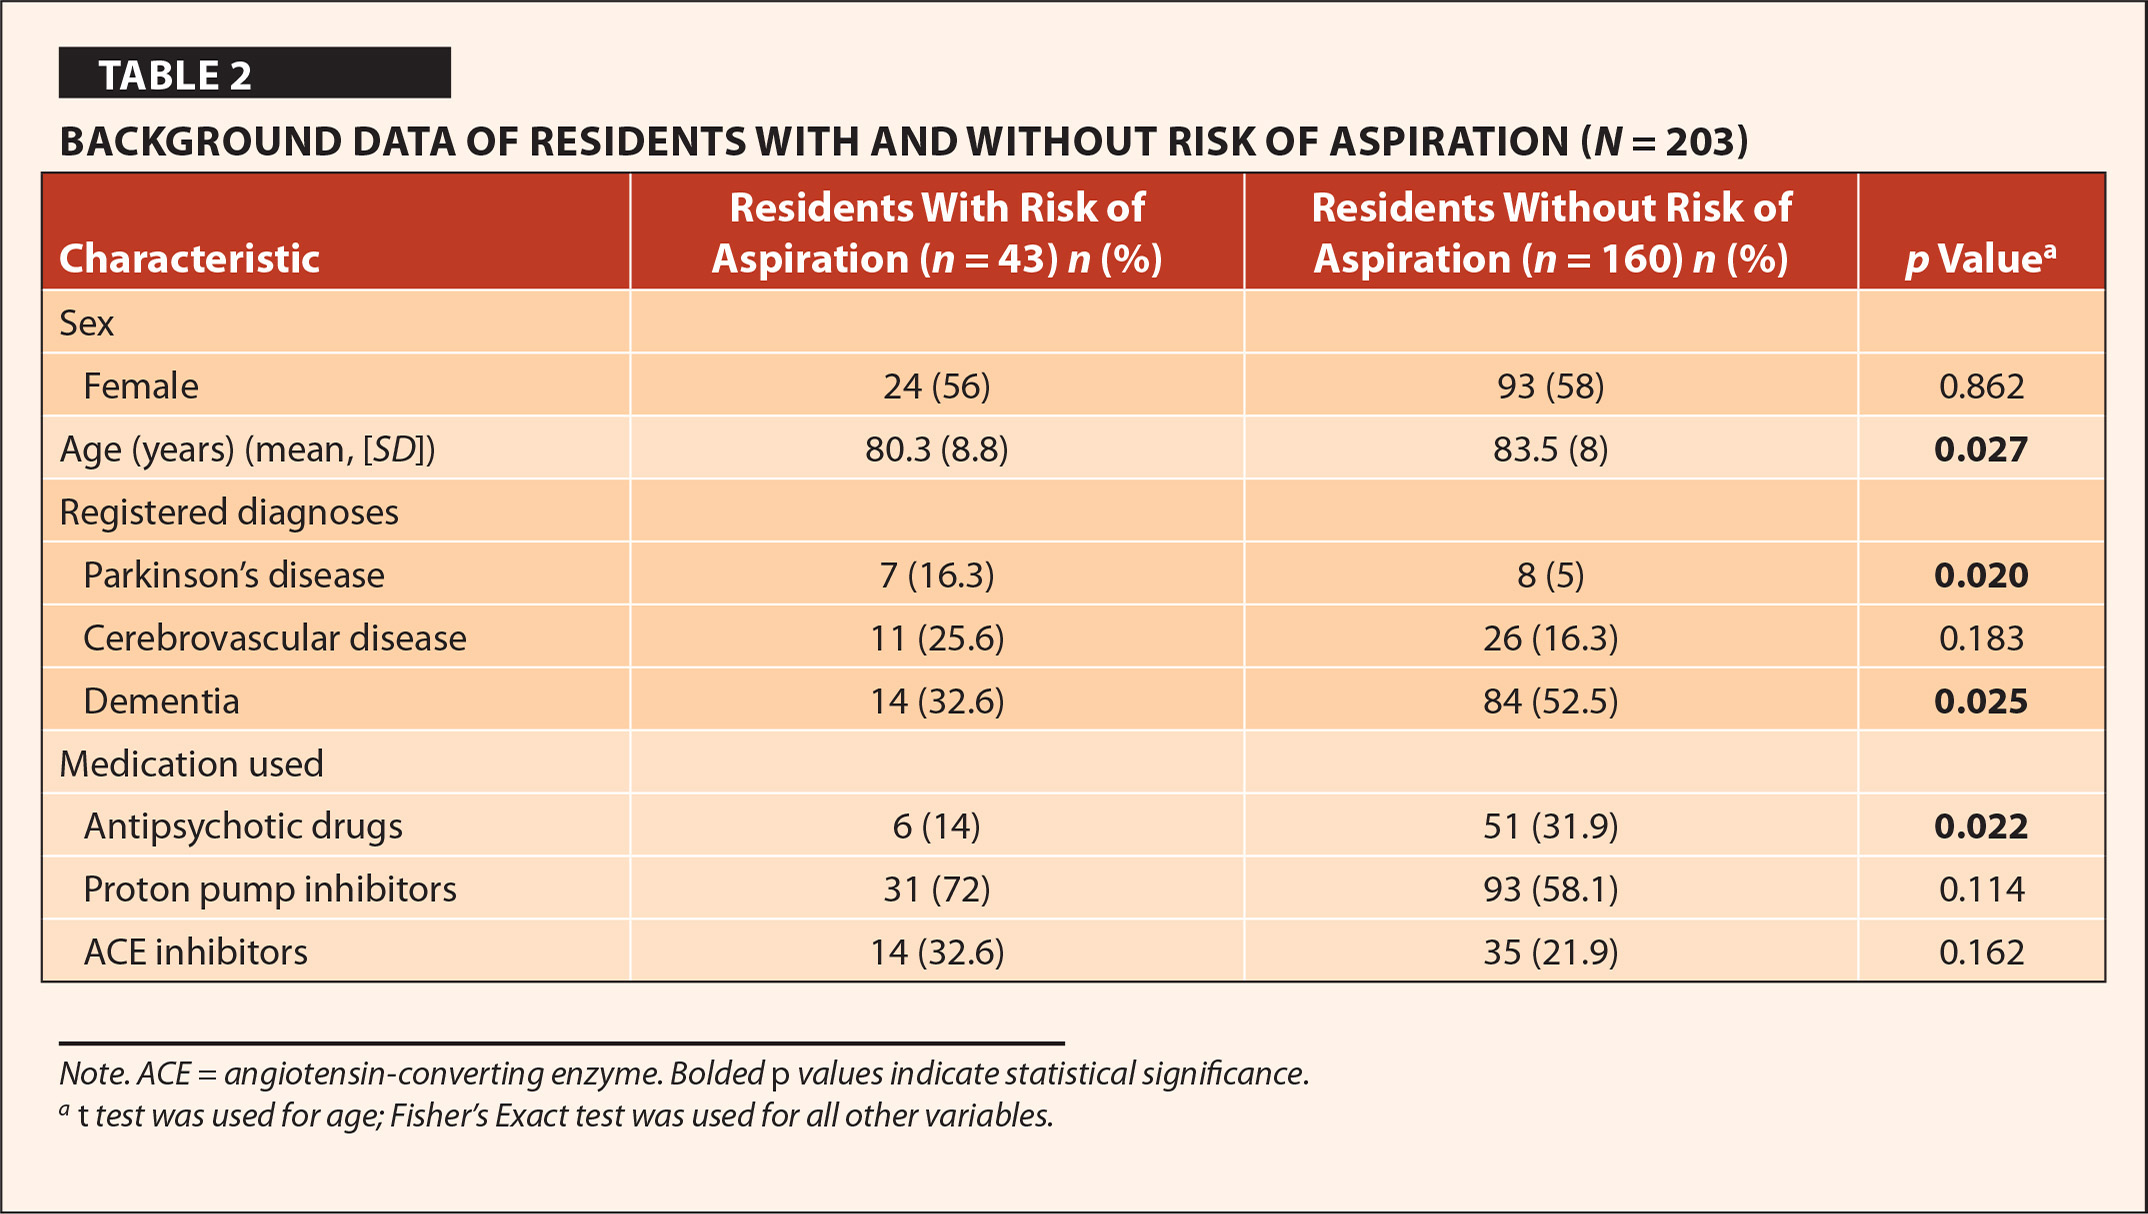 Background Data of Residents with and without Risk of Aspiration (N = 203)